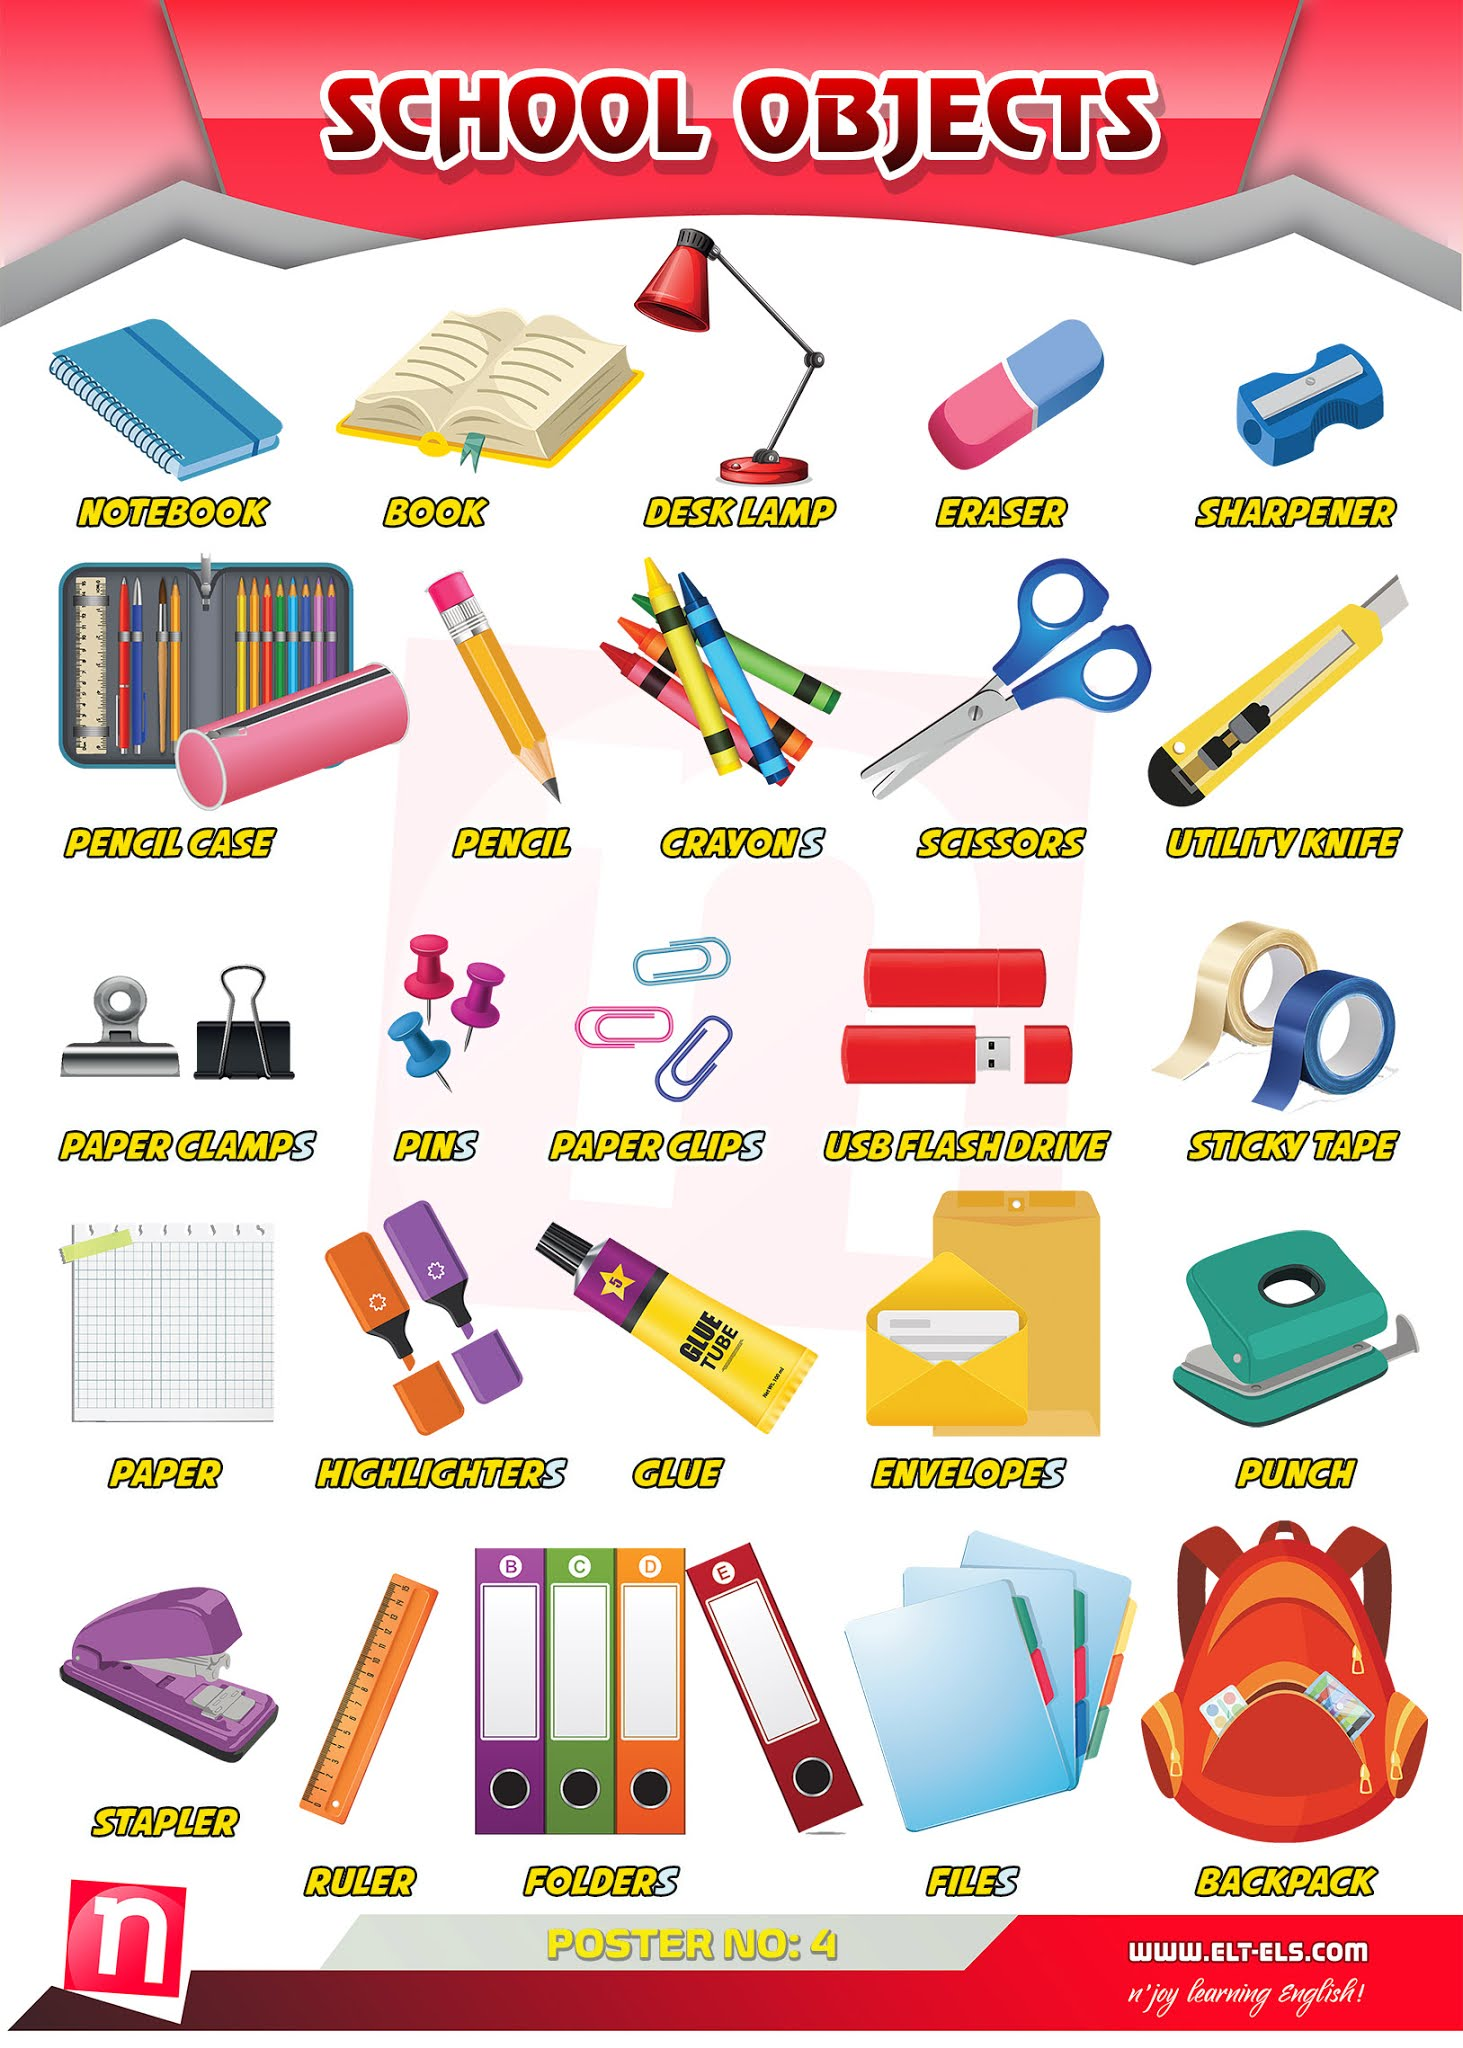 School objects in English